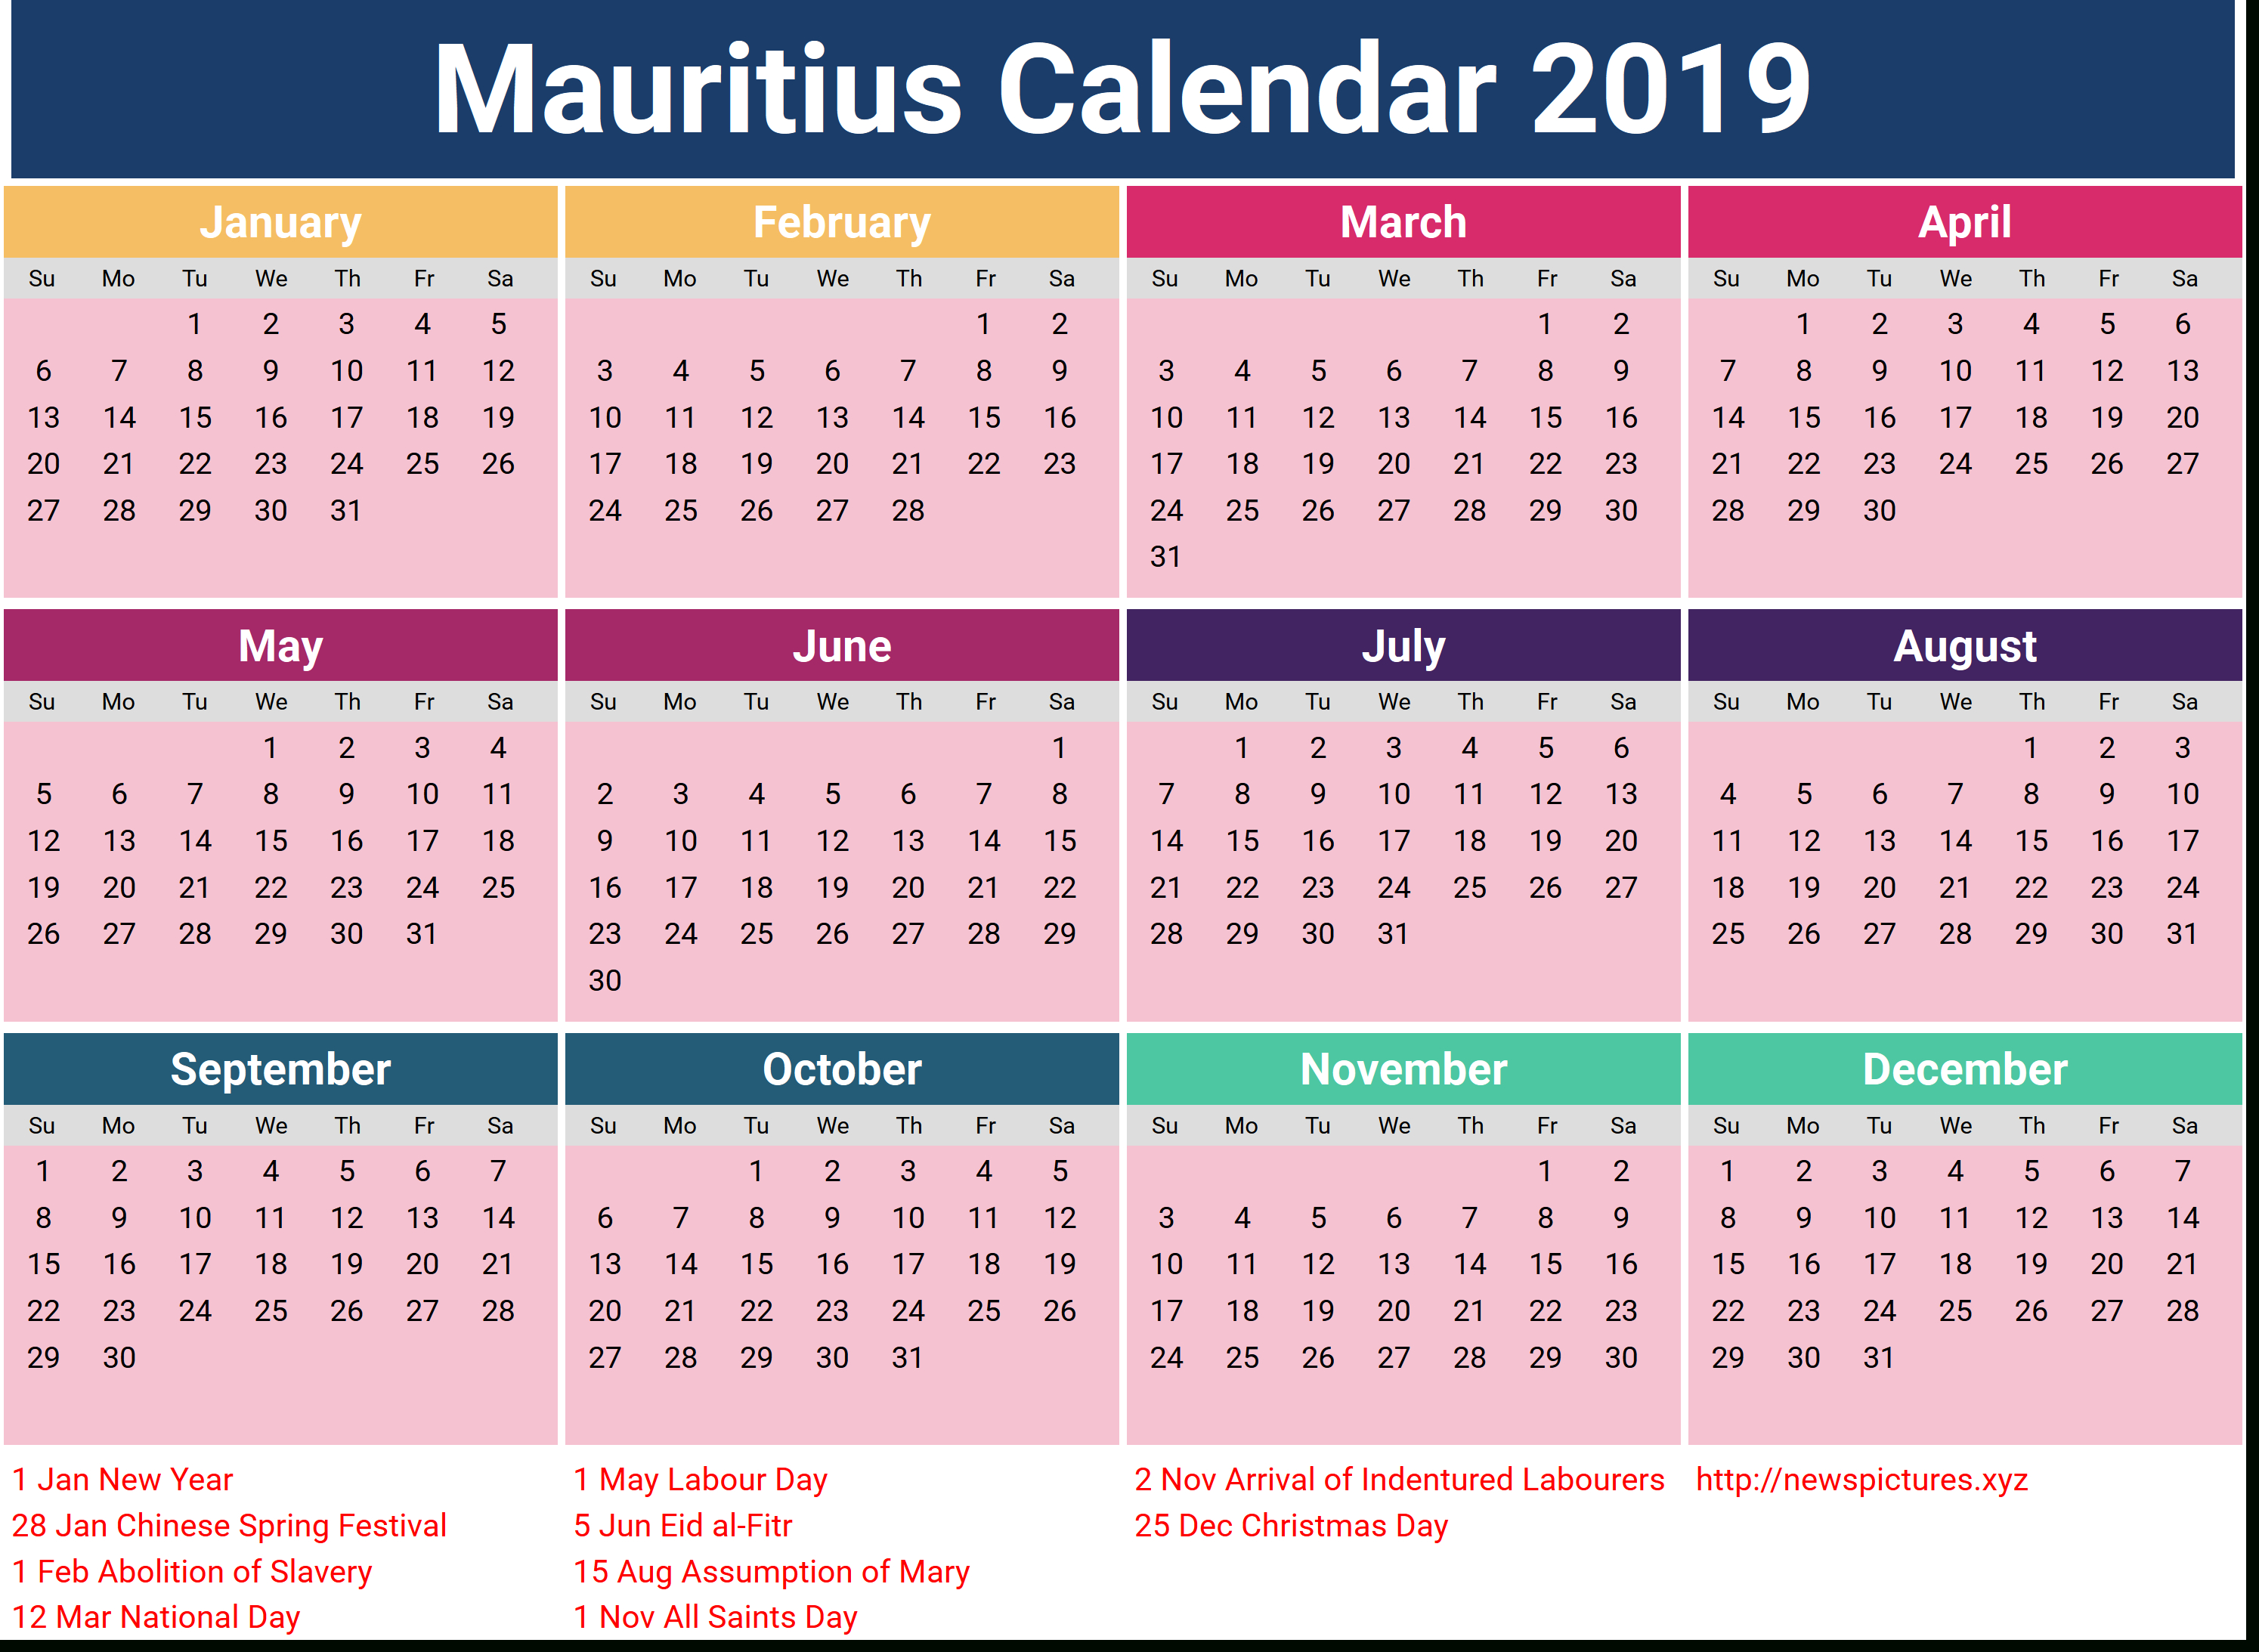 Image For Mauritius Calendar 2019 With Holidays | Calendar within School Calendar 2020 Mauritius